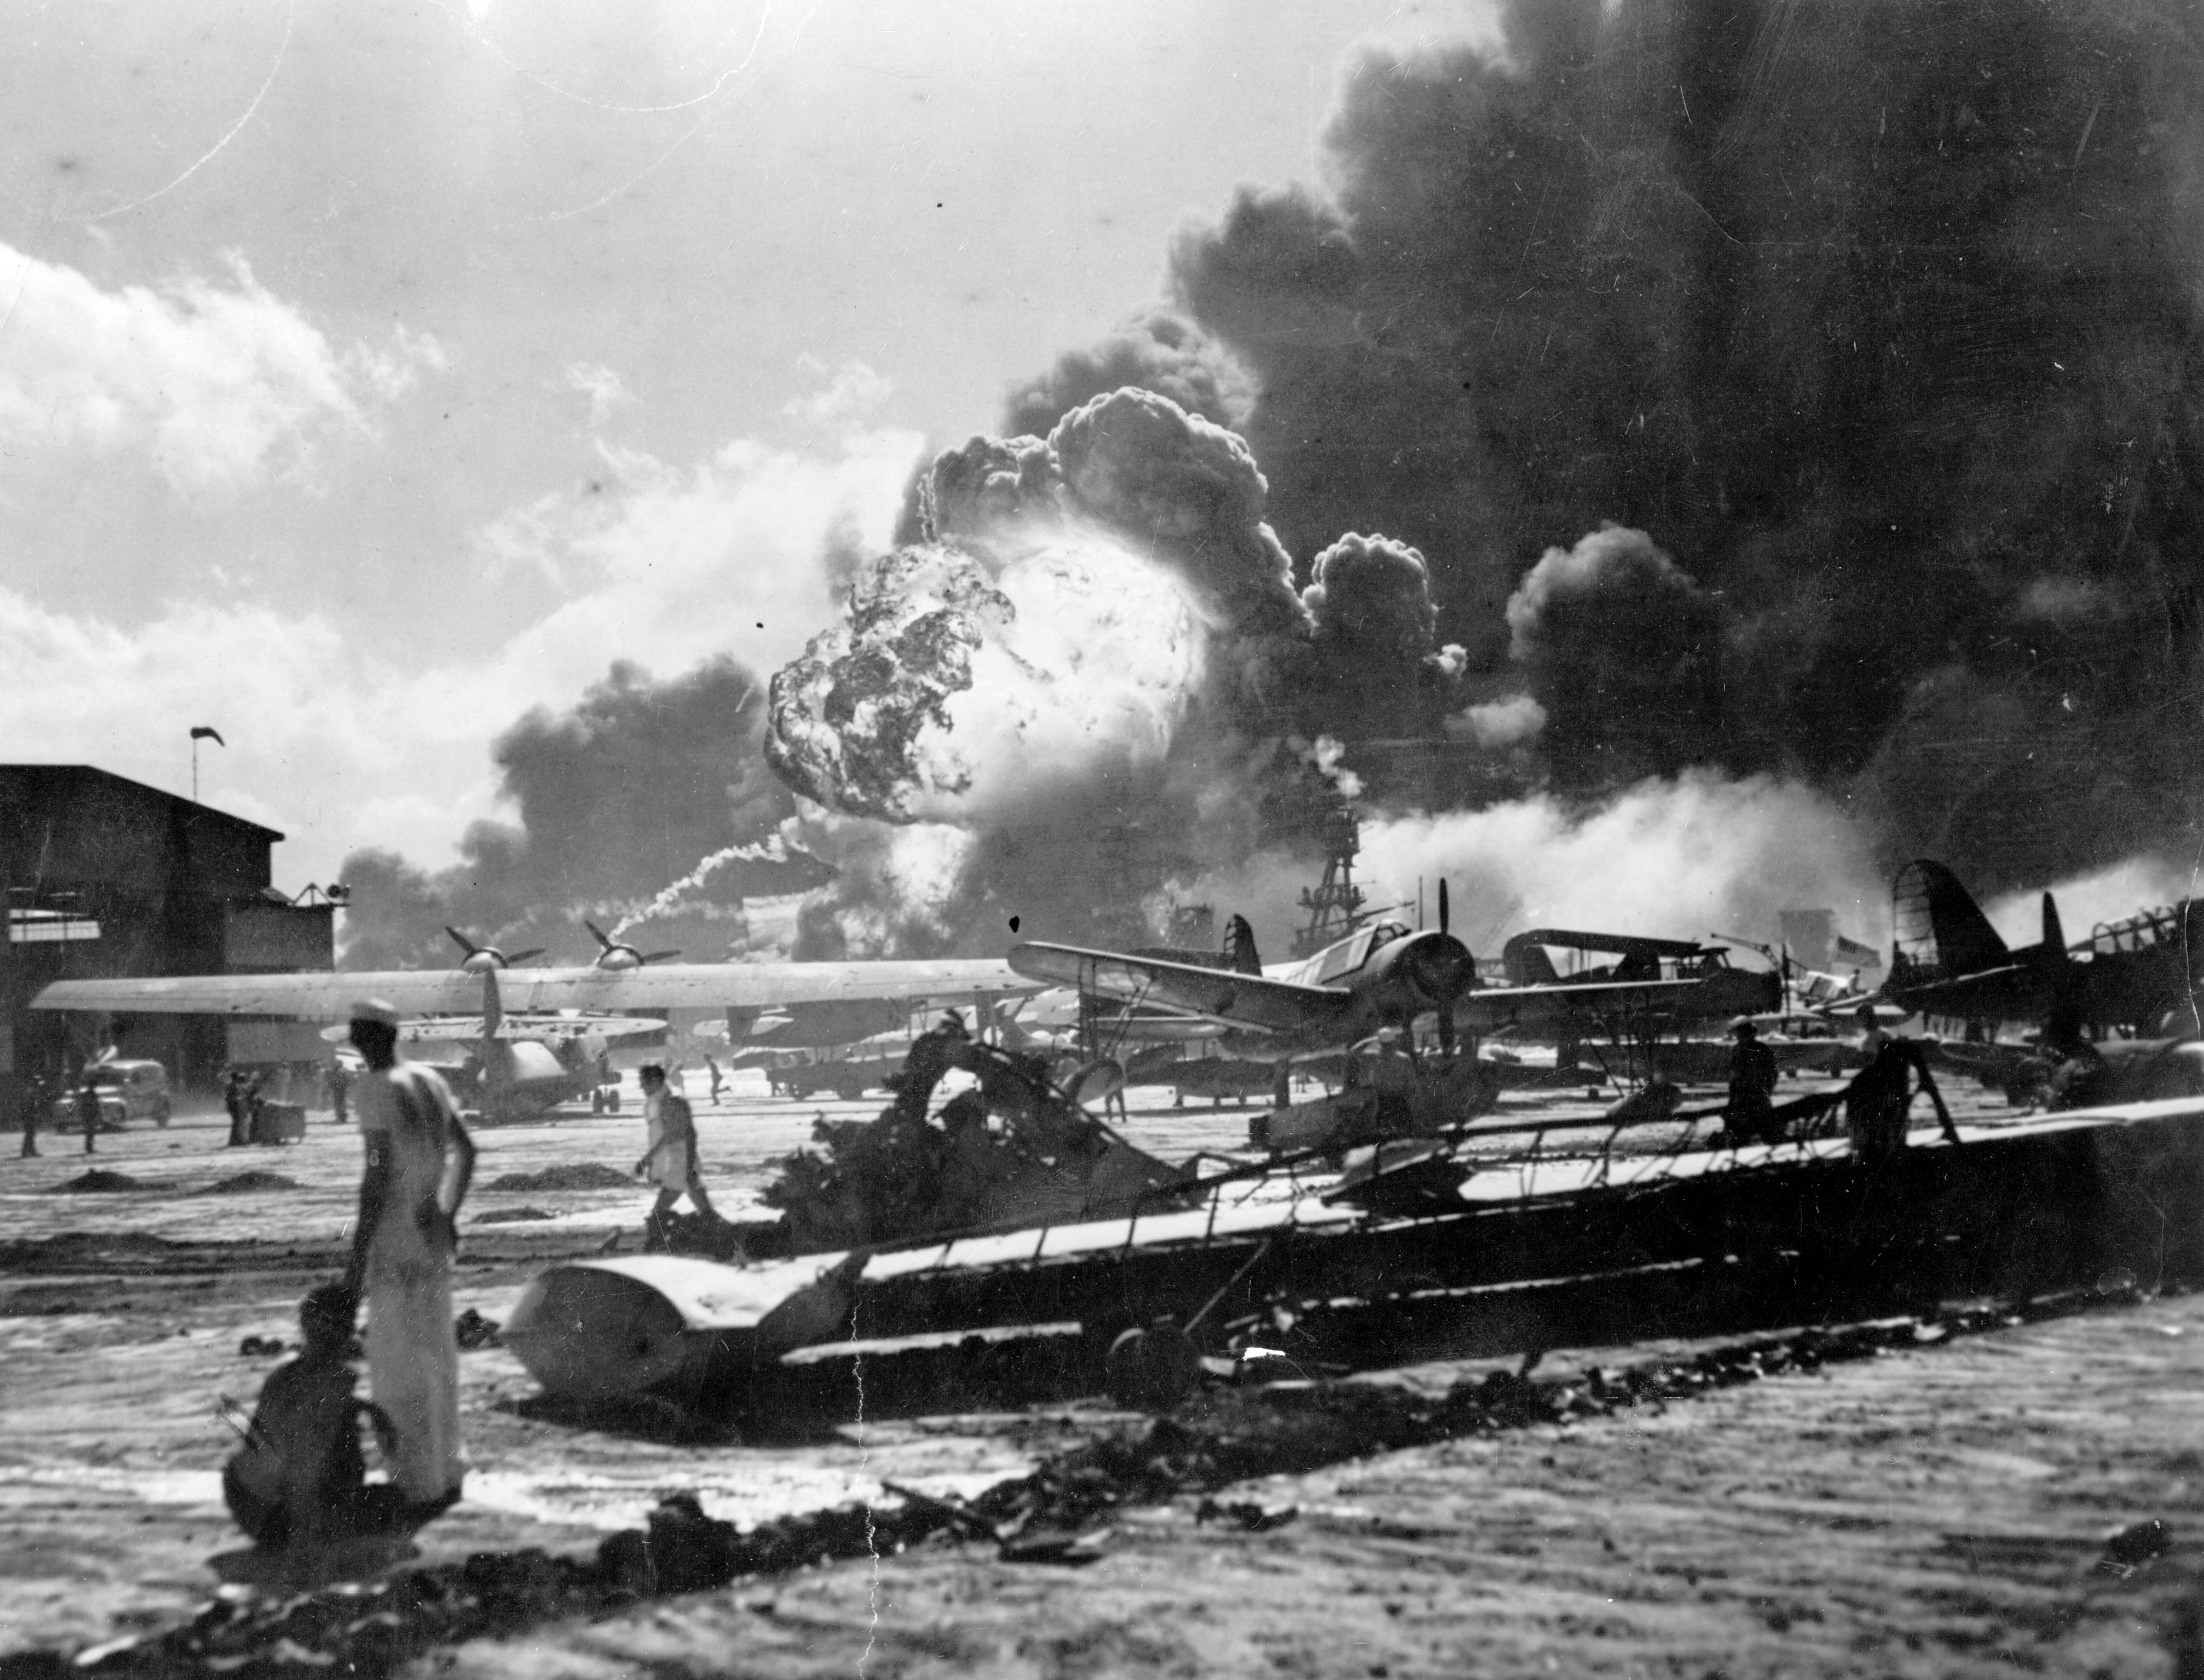 An explosion at the Naval Air Station, Ford Island, Pearl Harbour (Pearl Harbor) during the Japanese attack. Sailors stand amid wrecked watching as the USS Shaw explodes in the center background. The USS Nevada is also visible in the middle background, with her bow headed toward the left.     Photo by Fox Photos/Getty Images